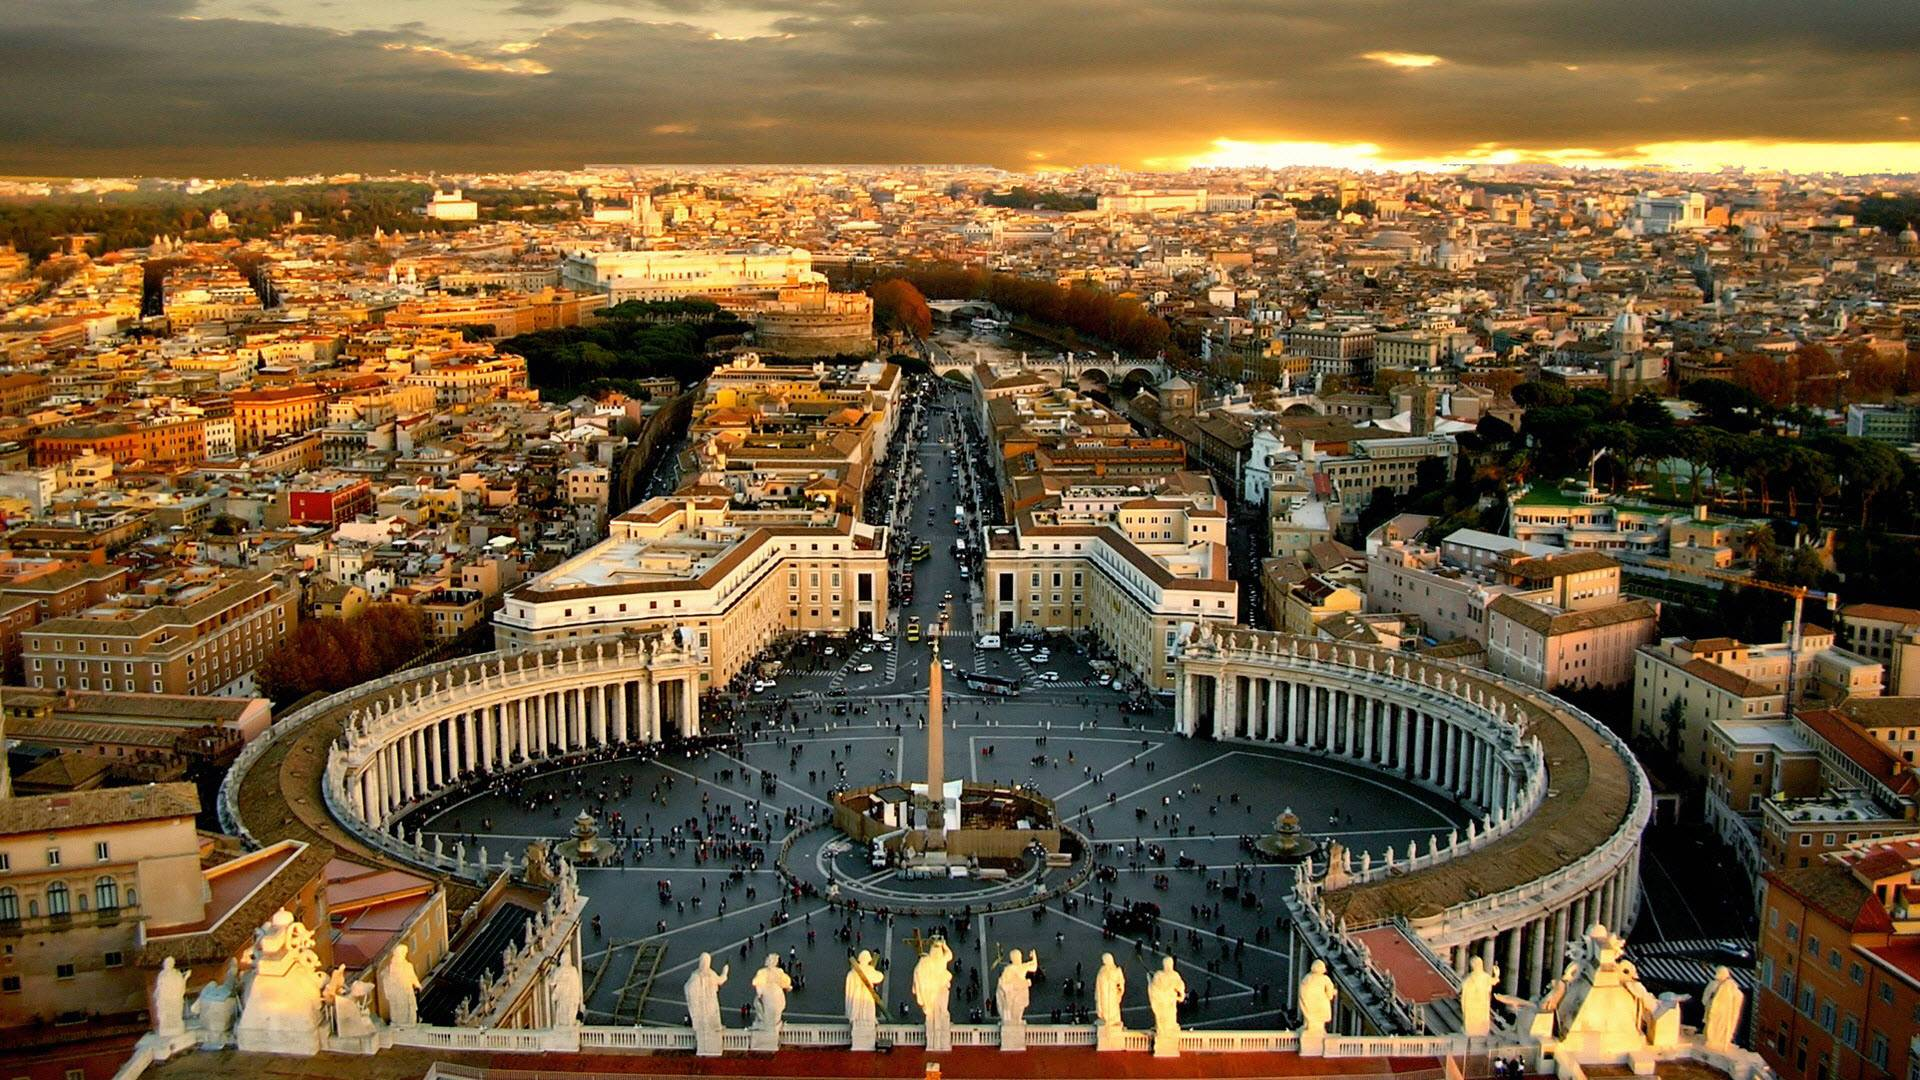 St. Peter's Square will be the arrival point for all pilgrims getting to Rome for the Jubilee